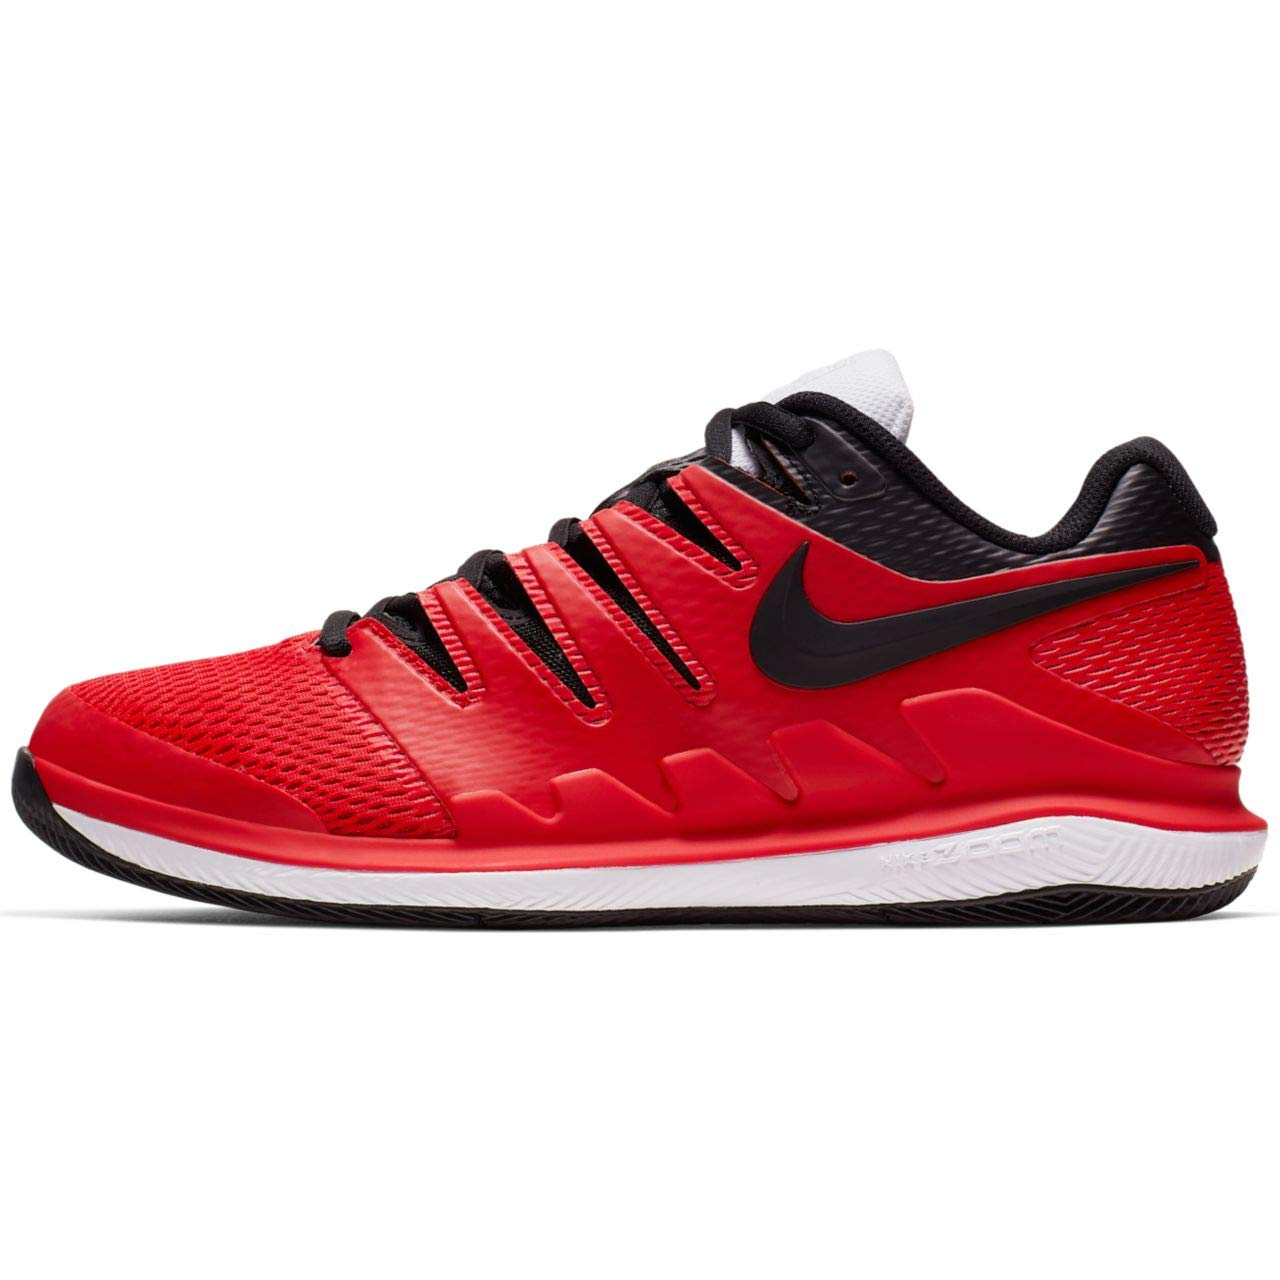 Nike Air Zoom Vapor X Mens Tennis Shoe (10 D US, University RedBlackWhite)